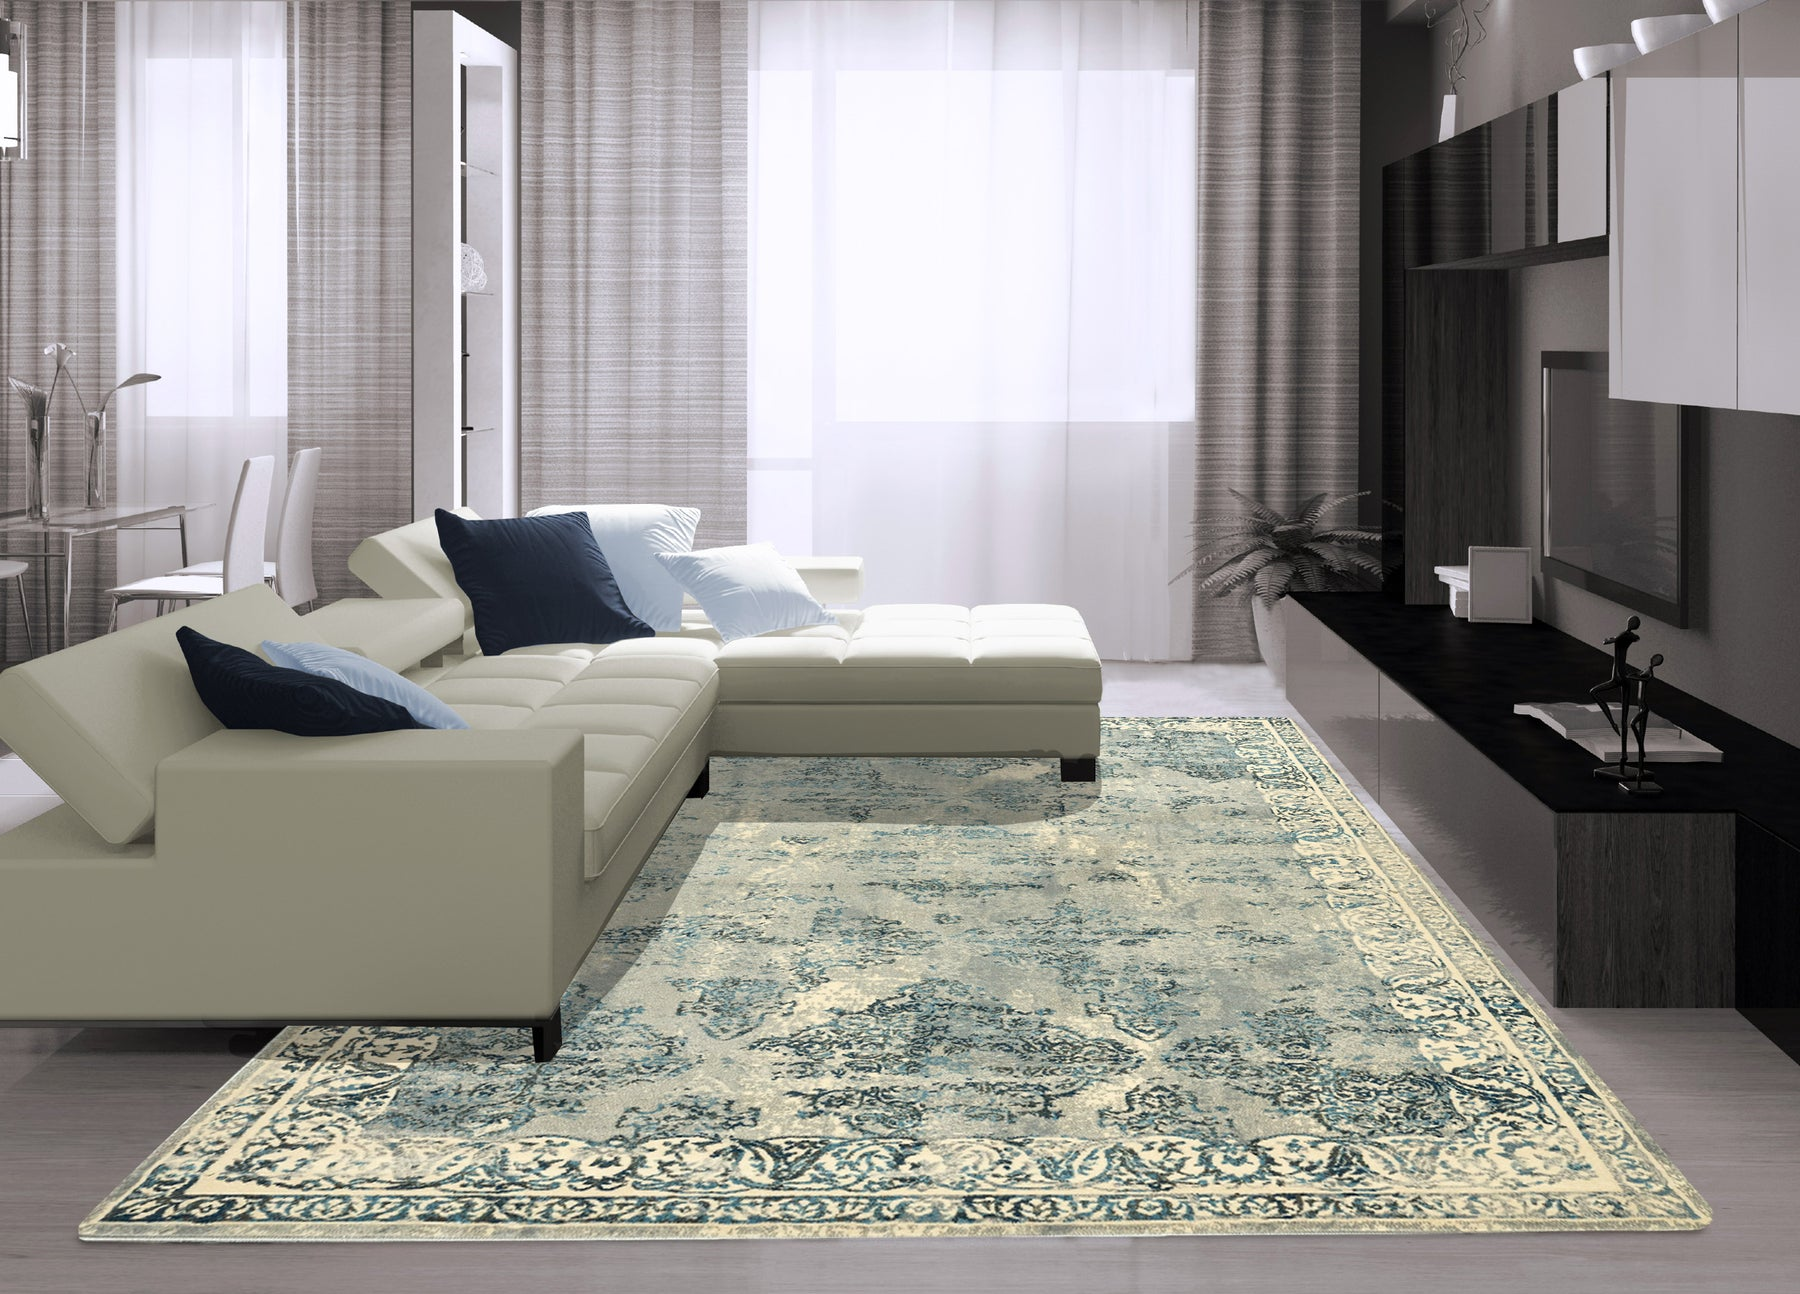 How to Make Neutral Rugs Work